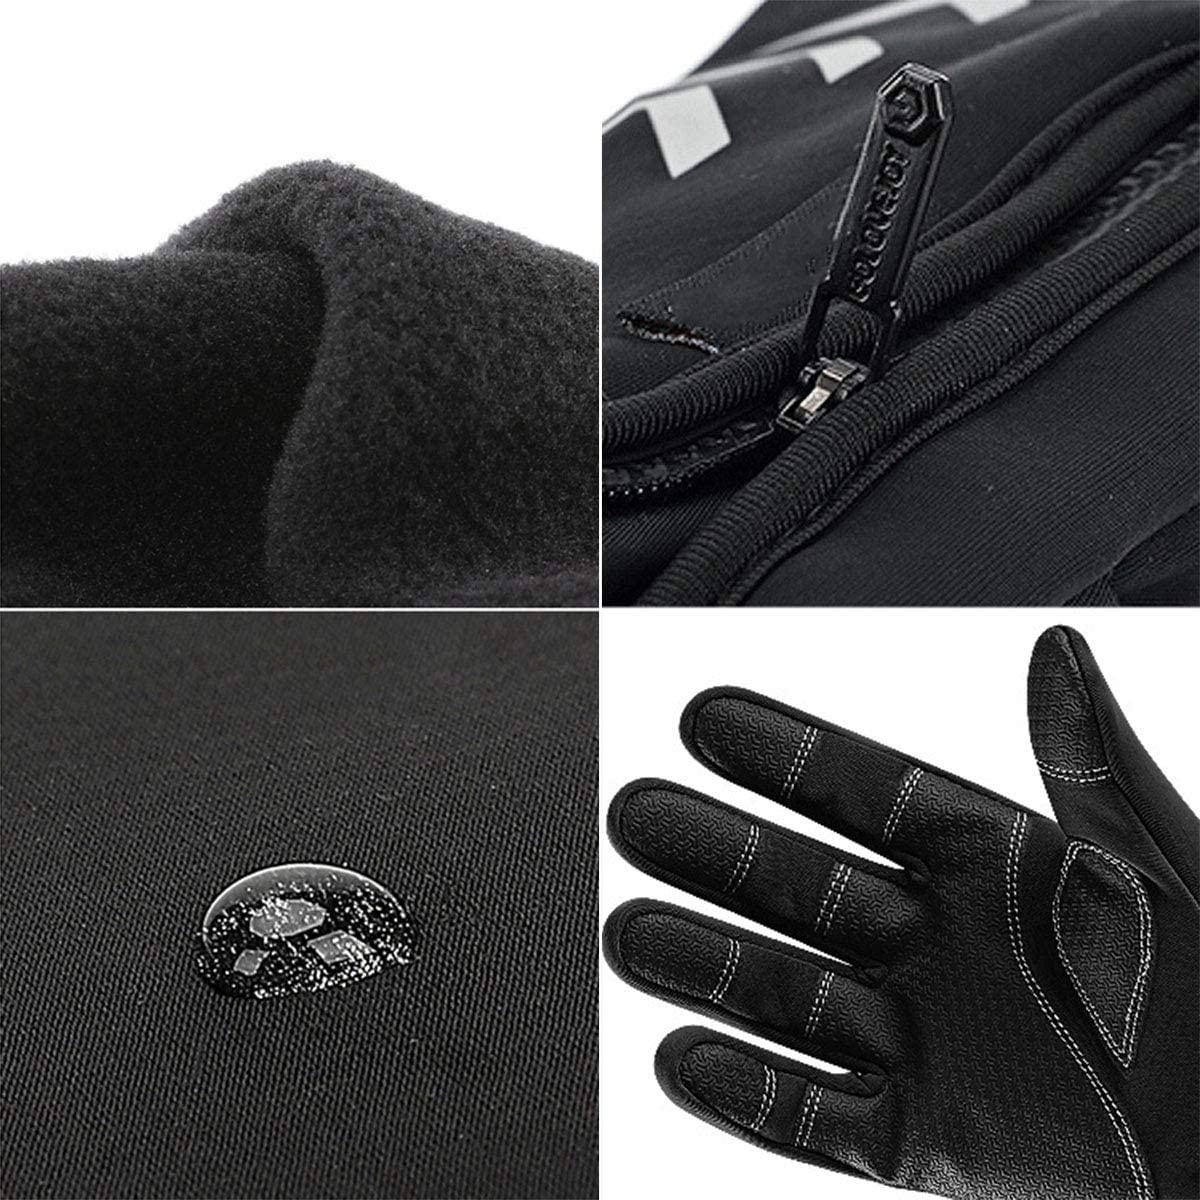 Winter Warm Waterproof and Windproof Touchscreen Gloves Full Finger Mittens for Men /& Women Rehomy Cycling Gloves